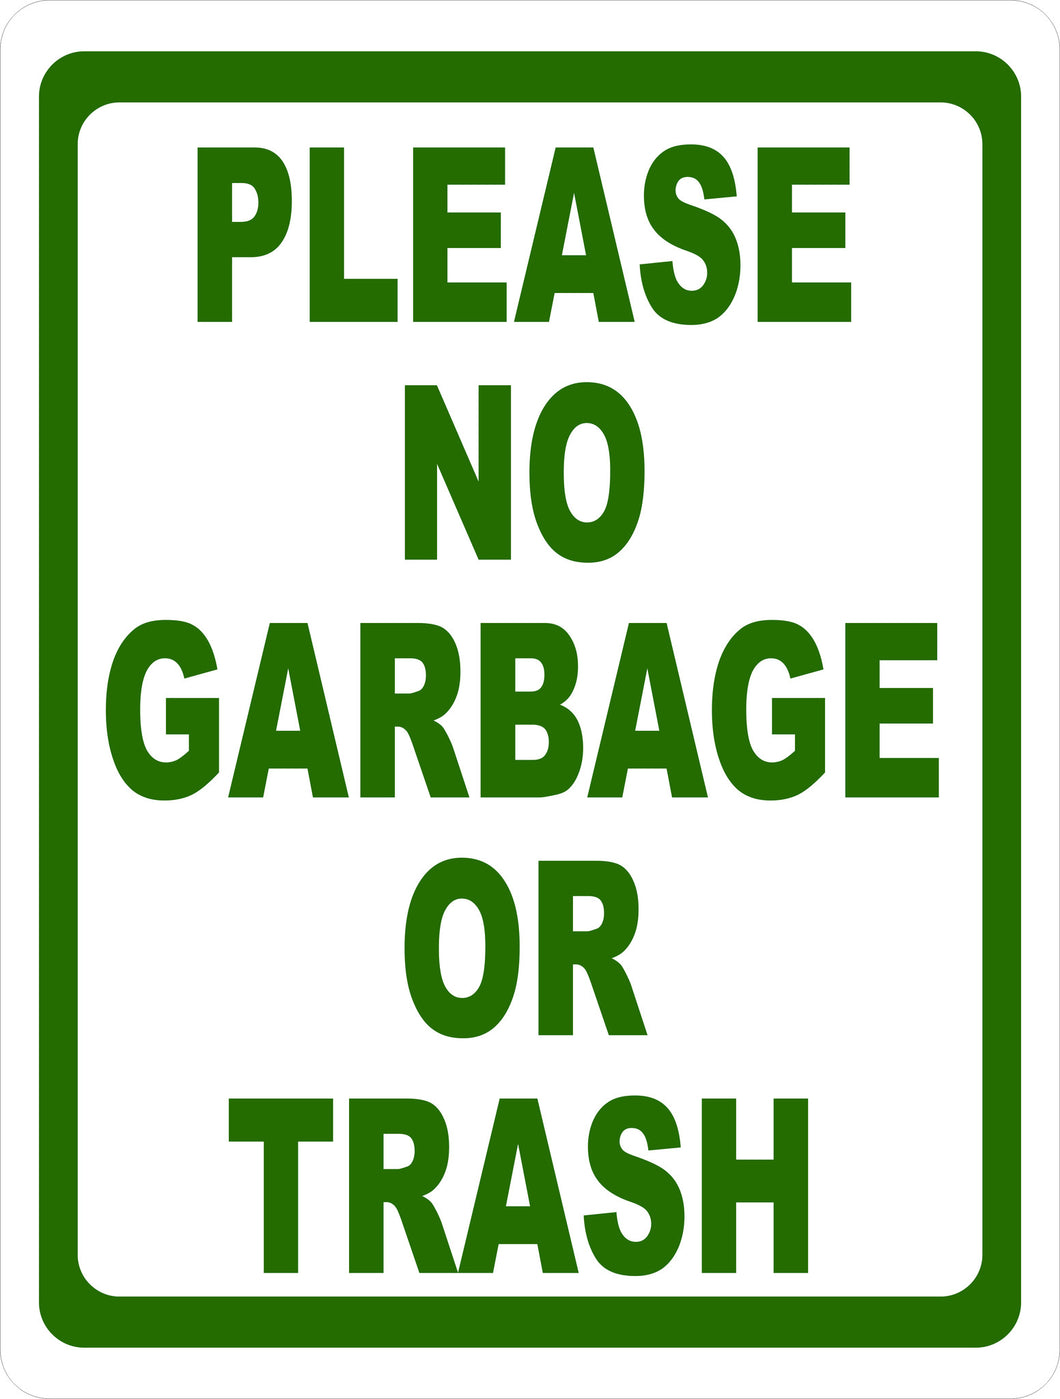 Please No Garbage or Trash Sign